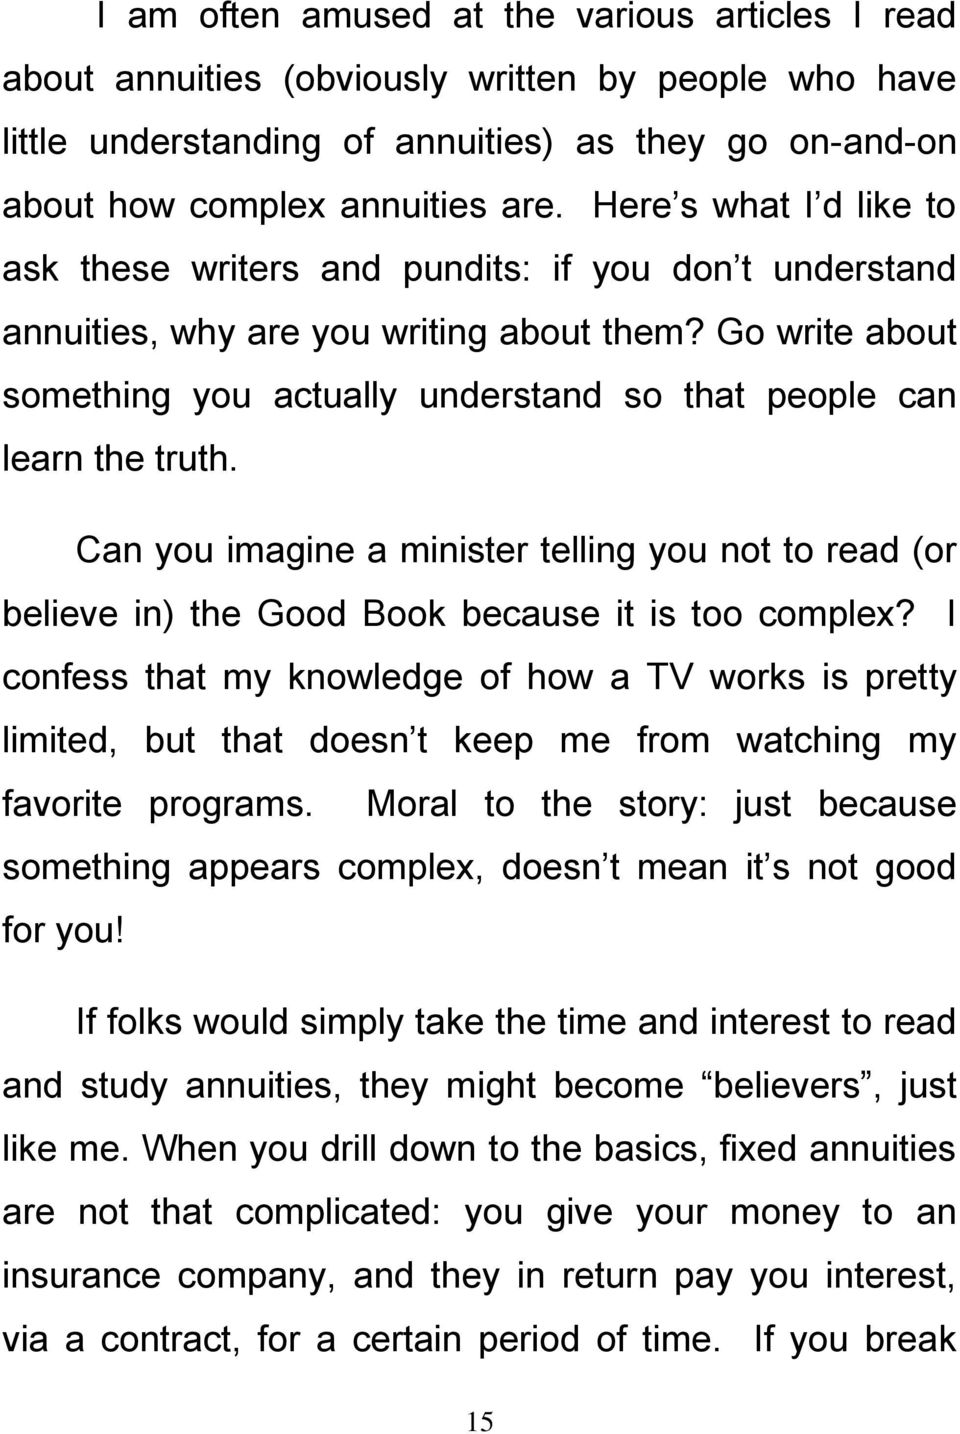 Go write about something you actually understand so that people can learn the truth. Can you imagine a minister telling you not to read (or believe in) the Good Book because it is too complex?